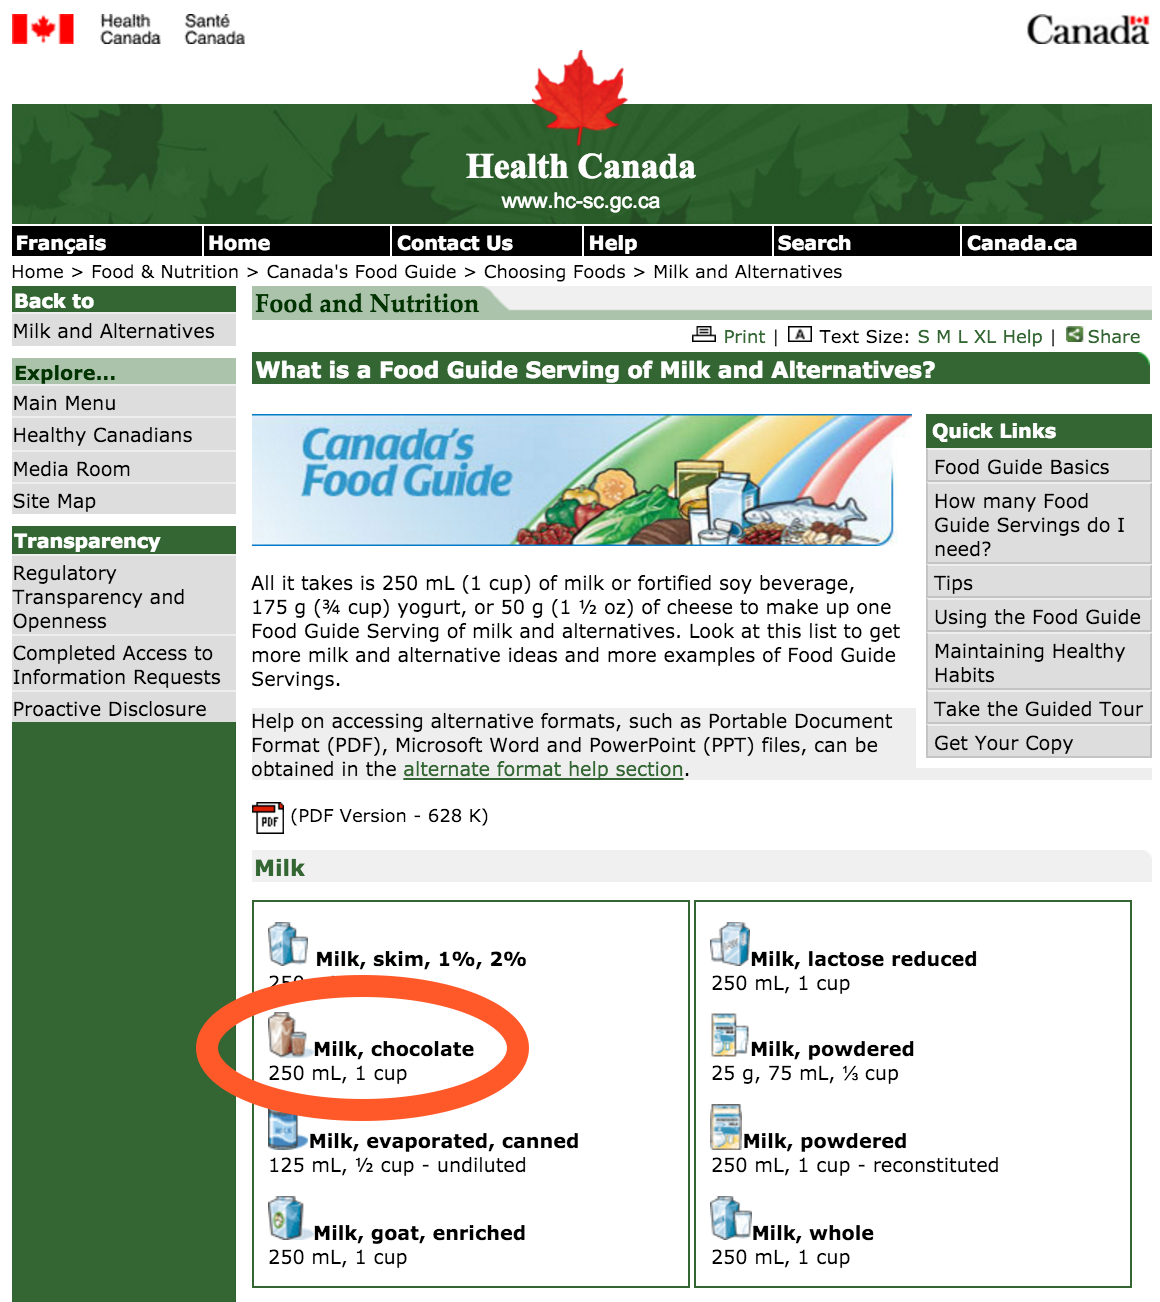 the canada food guide essay Essays - largest database of quality sample essays and research papers on myplate studymode - premium and free united states' vs canada's food guide united states canada comparisons the myplate food guide features five food groups in total, yet canada's.